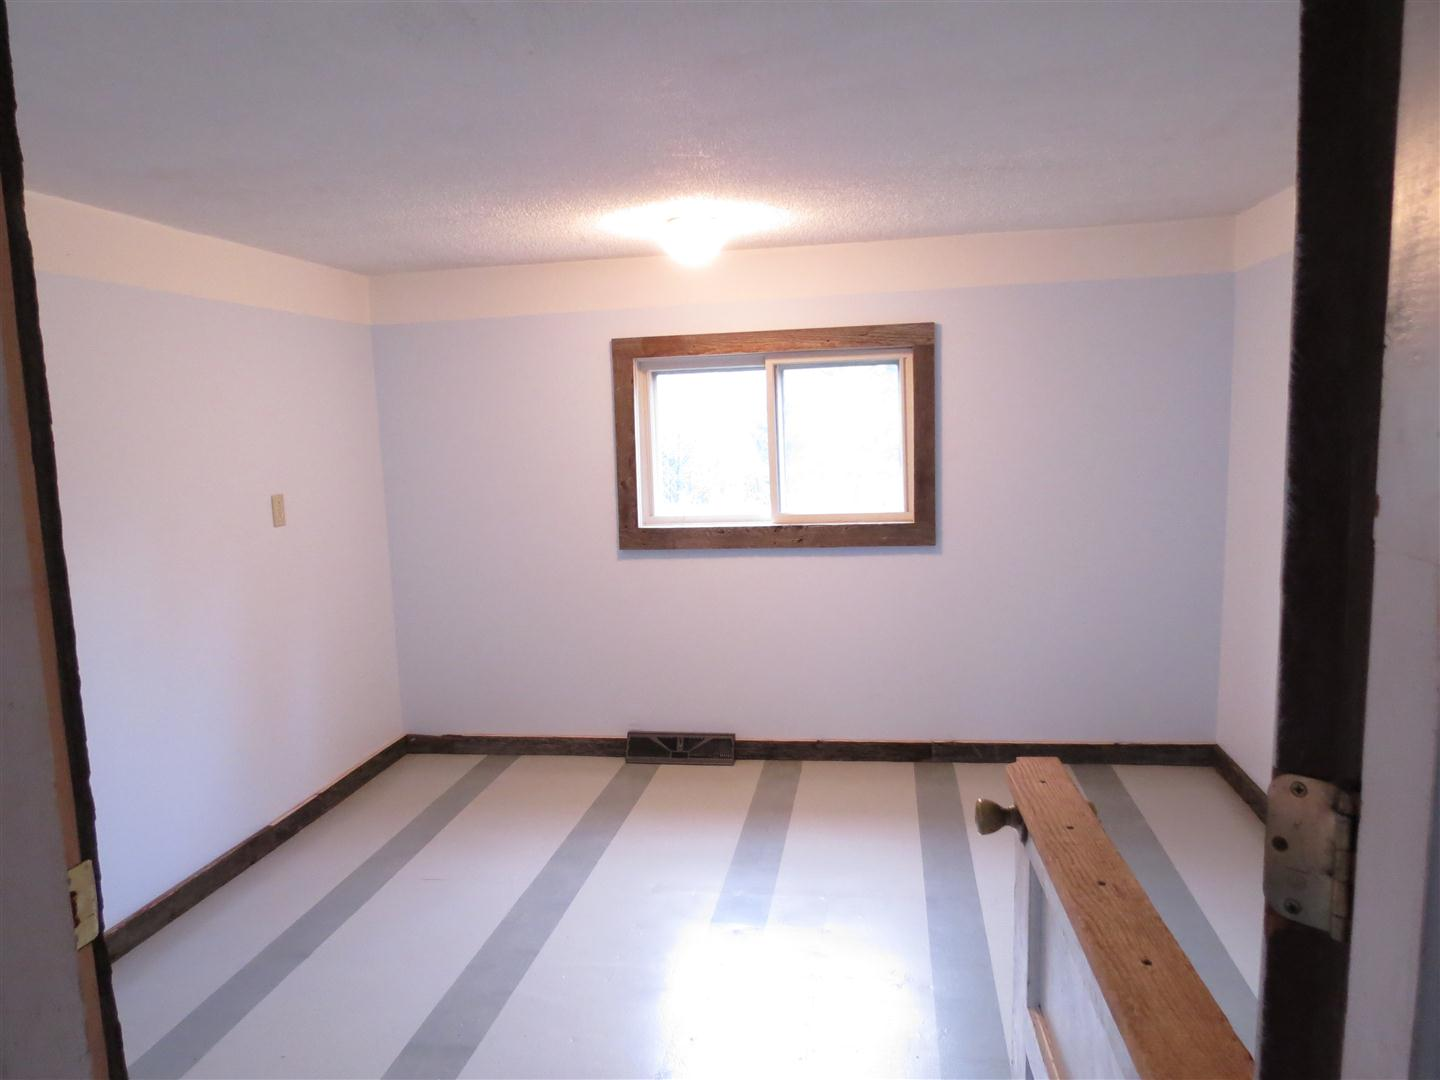 Painted Plywood Floors U2013 A How To